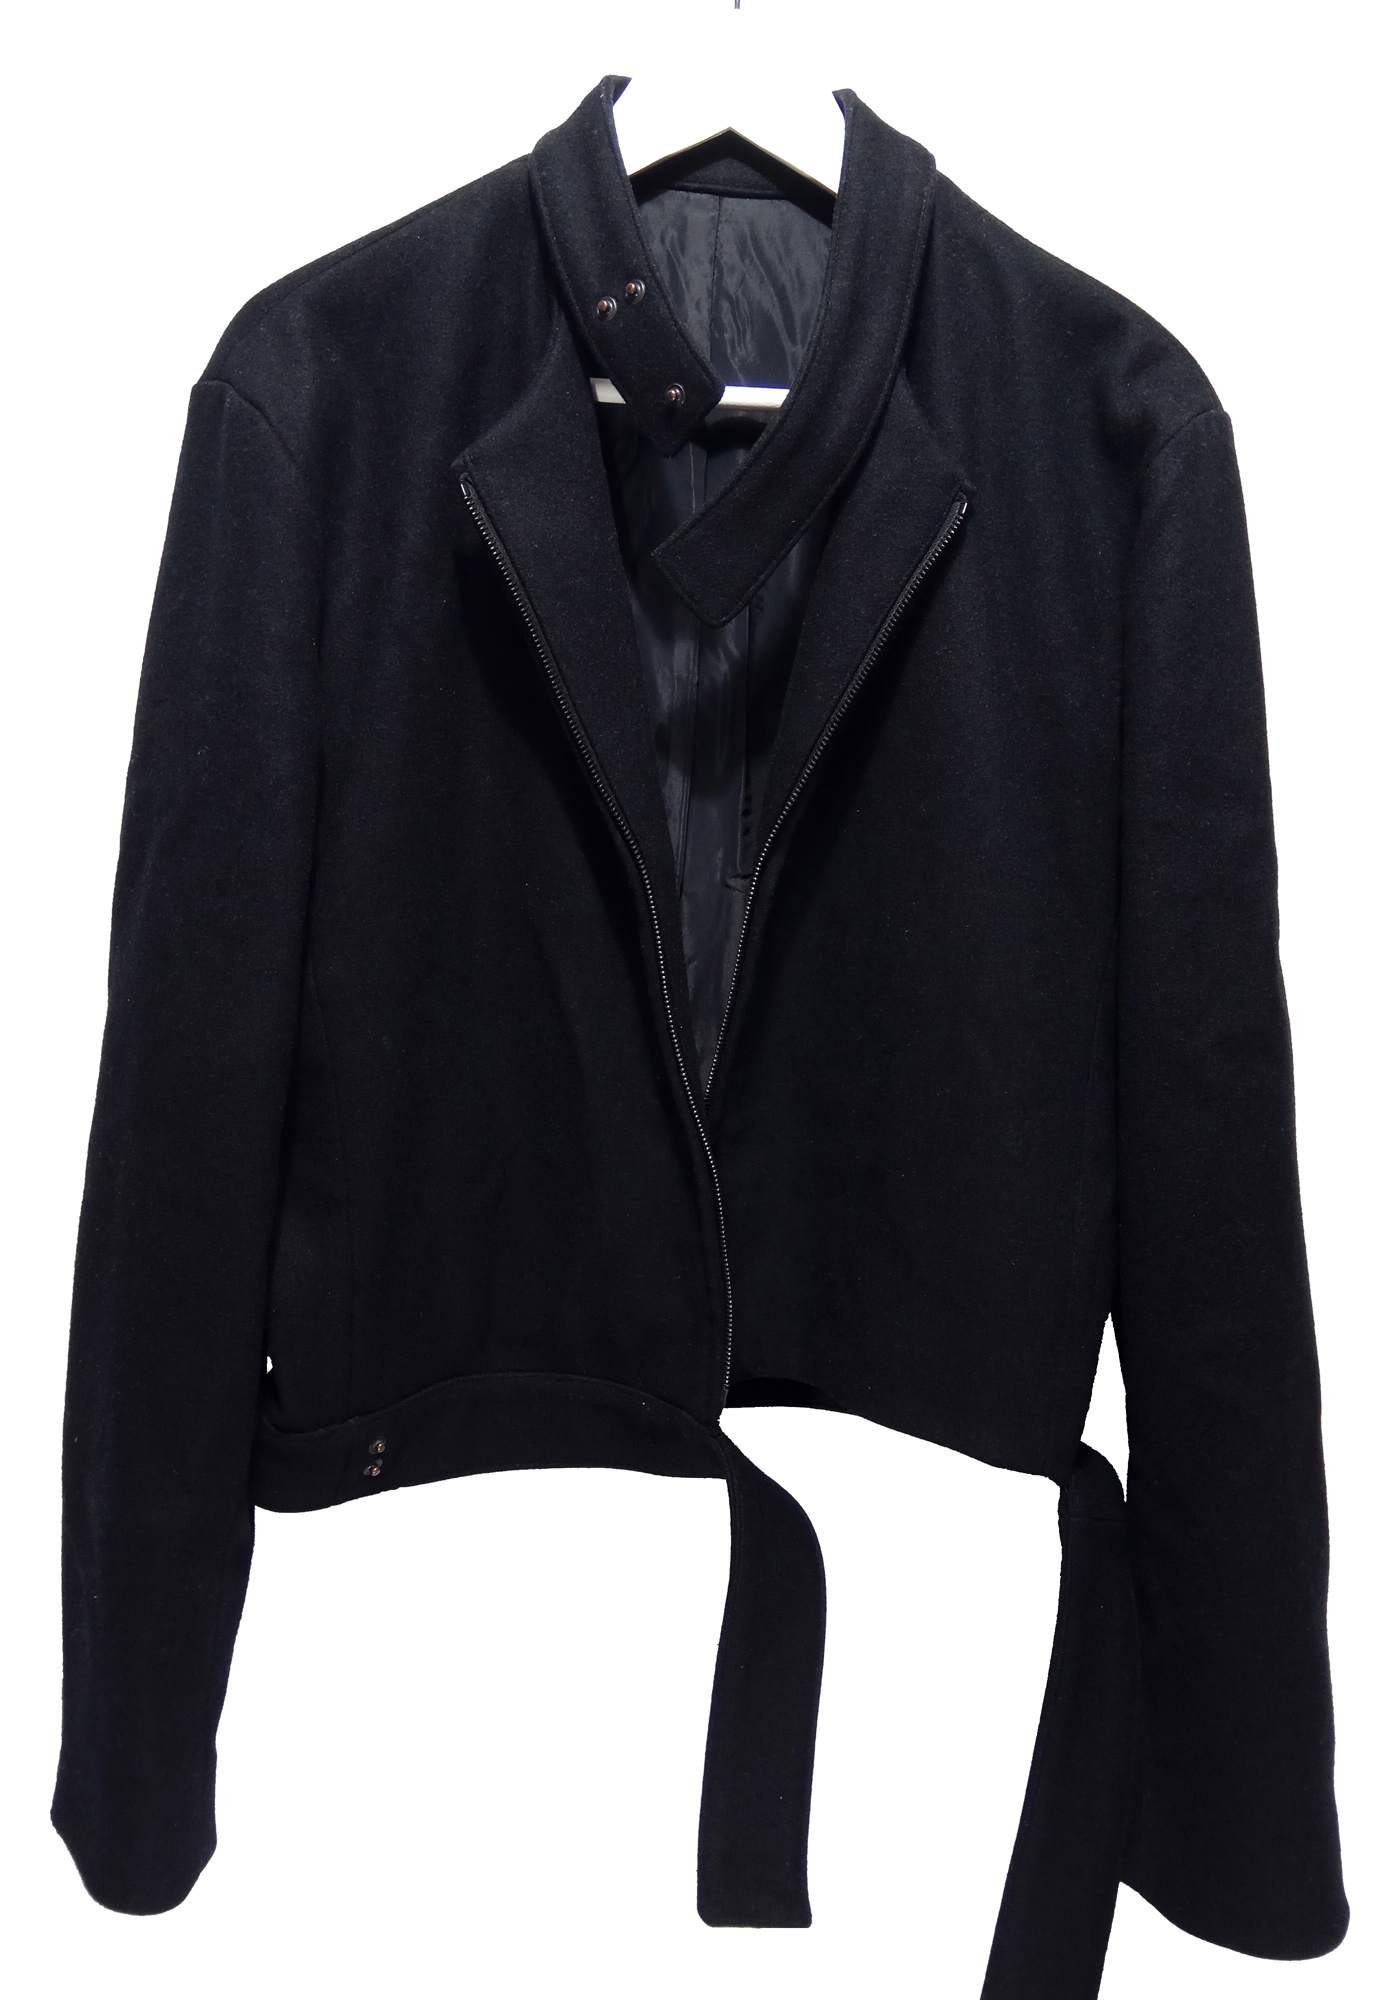 Yves Saint Laurent Rive Gauche by Hedi Slimane AW00 deconstructed wool jacket